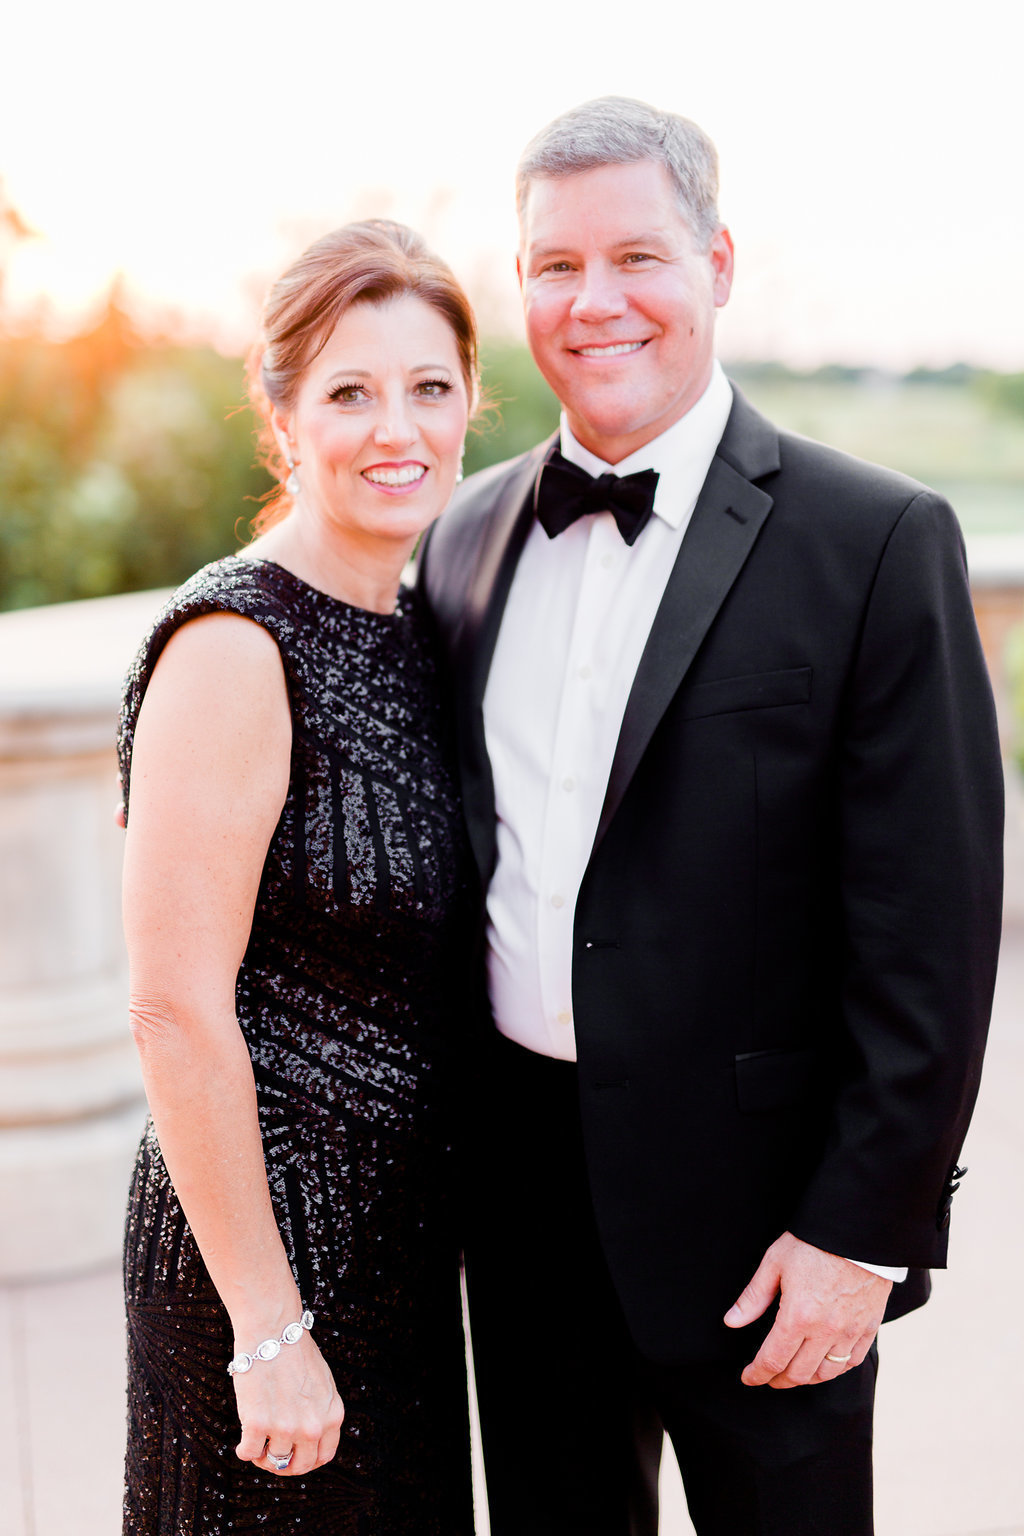 Gallardia-Oklahoma-City-Oklahoma-Wedding-Photographer-Holly-Felts-Photography-Photos-435